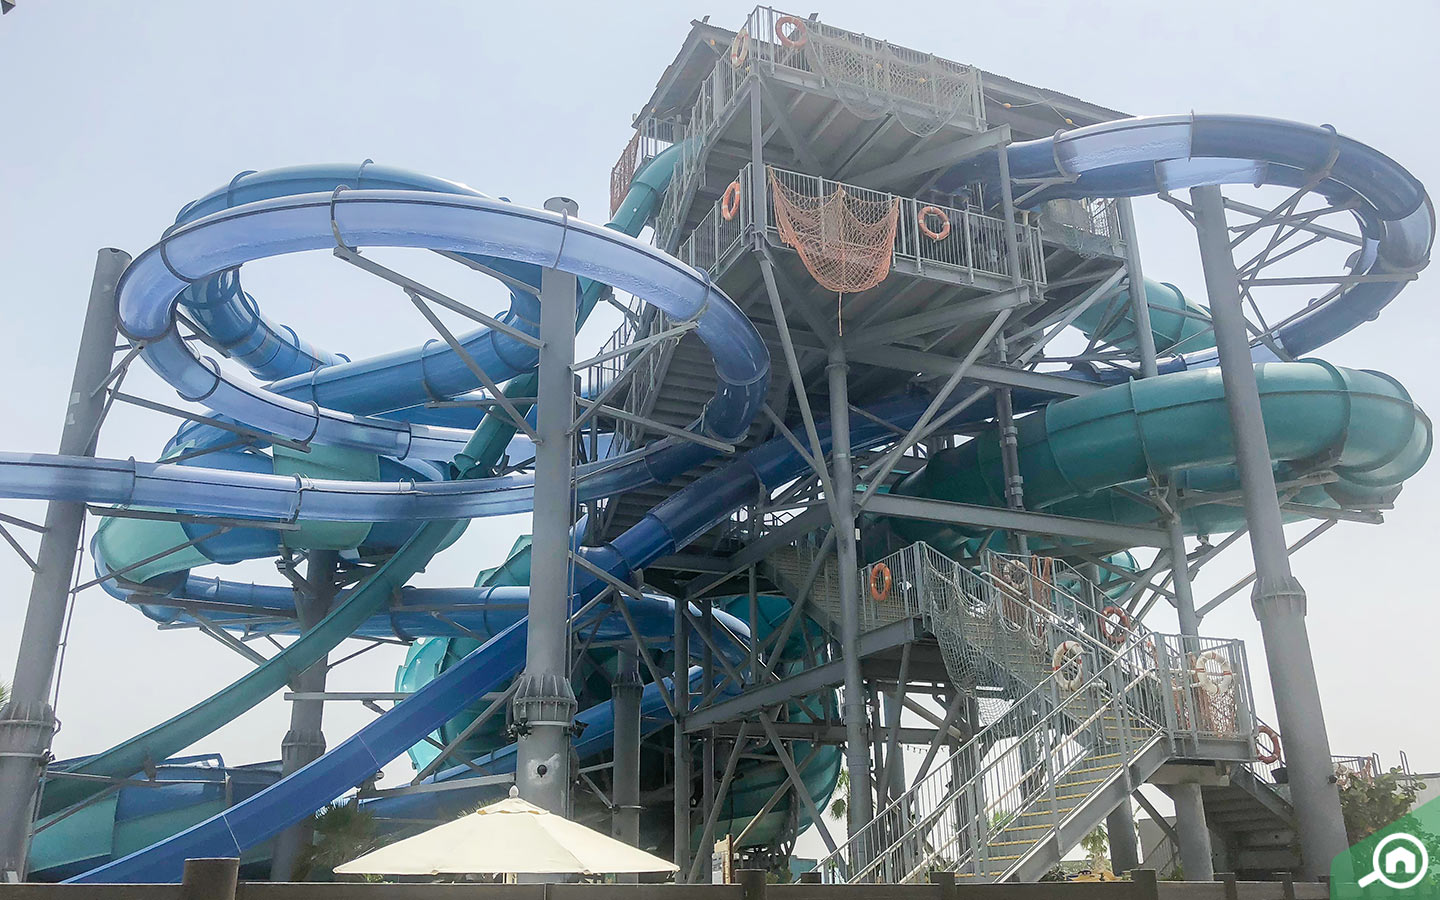 Slides at Laguna Water Park at La Mer